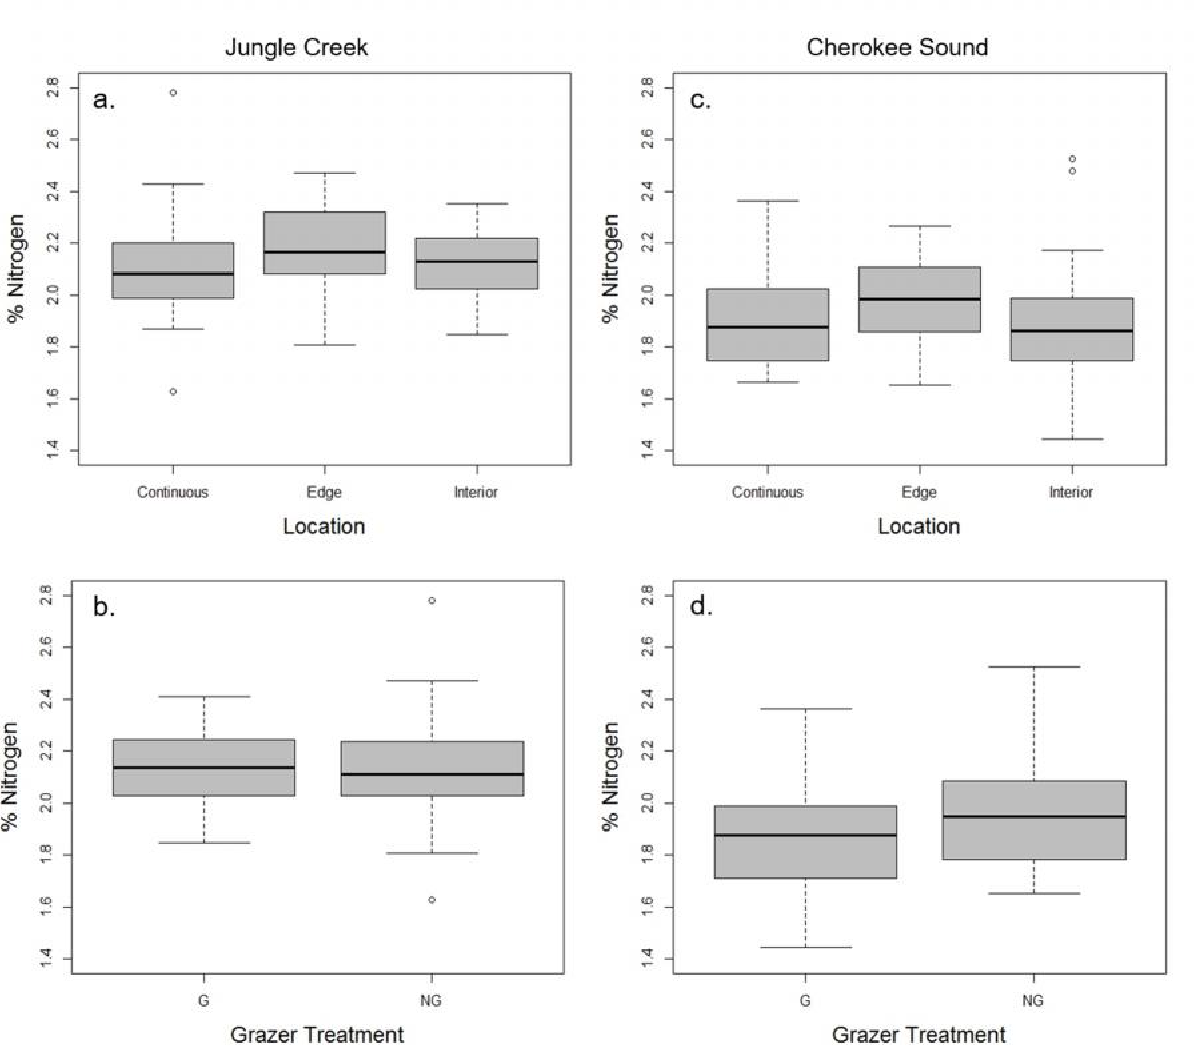 Figure 4.3. Nitrogen content in seagrass photosynthetic tissues within sites. Differences in nitrogen content by sampling location (panels a and c), and grazer treatments (panels b and d). G= grazer control; NG= grazer exclusion. Significant differences indicated by letters above error bars.